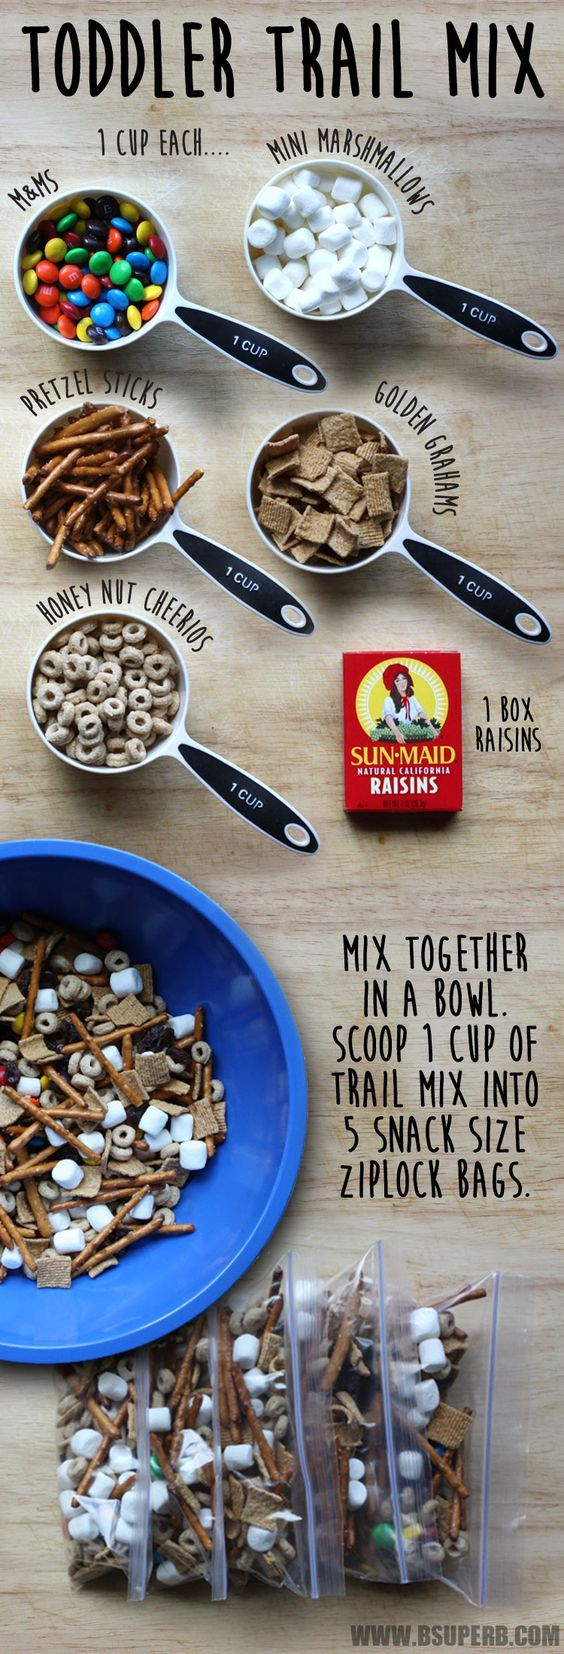 Toddler Trail Mix - quick and easy recipe that your kiddos will love